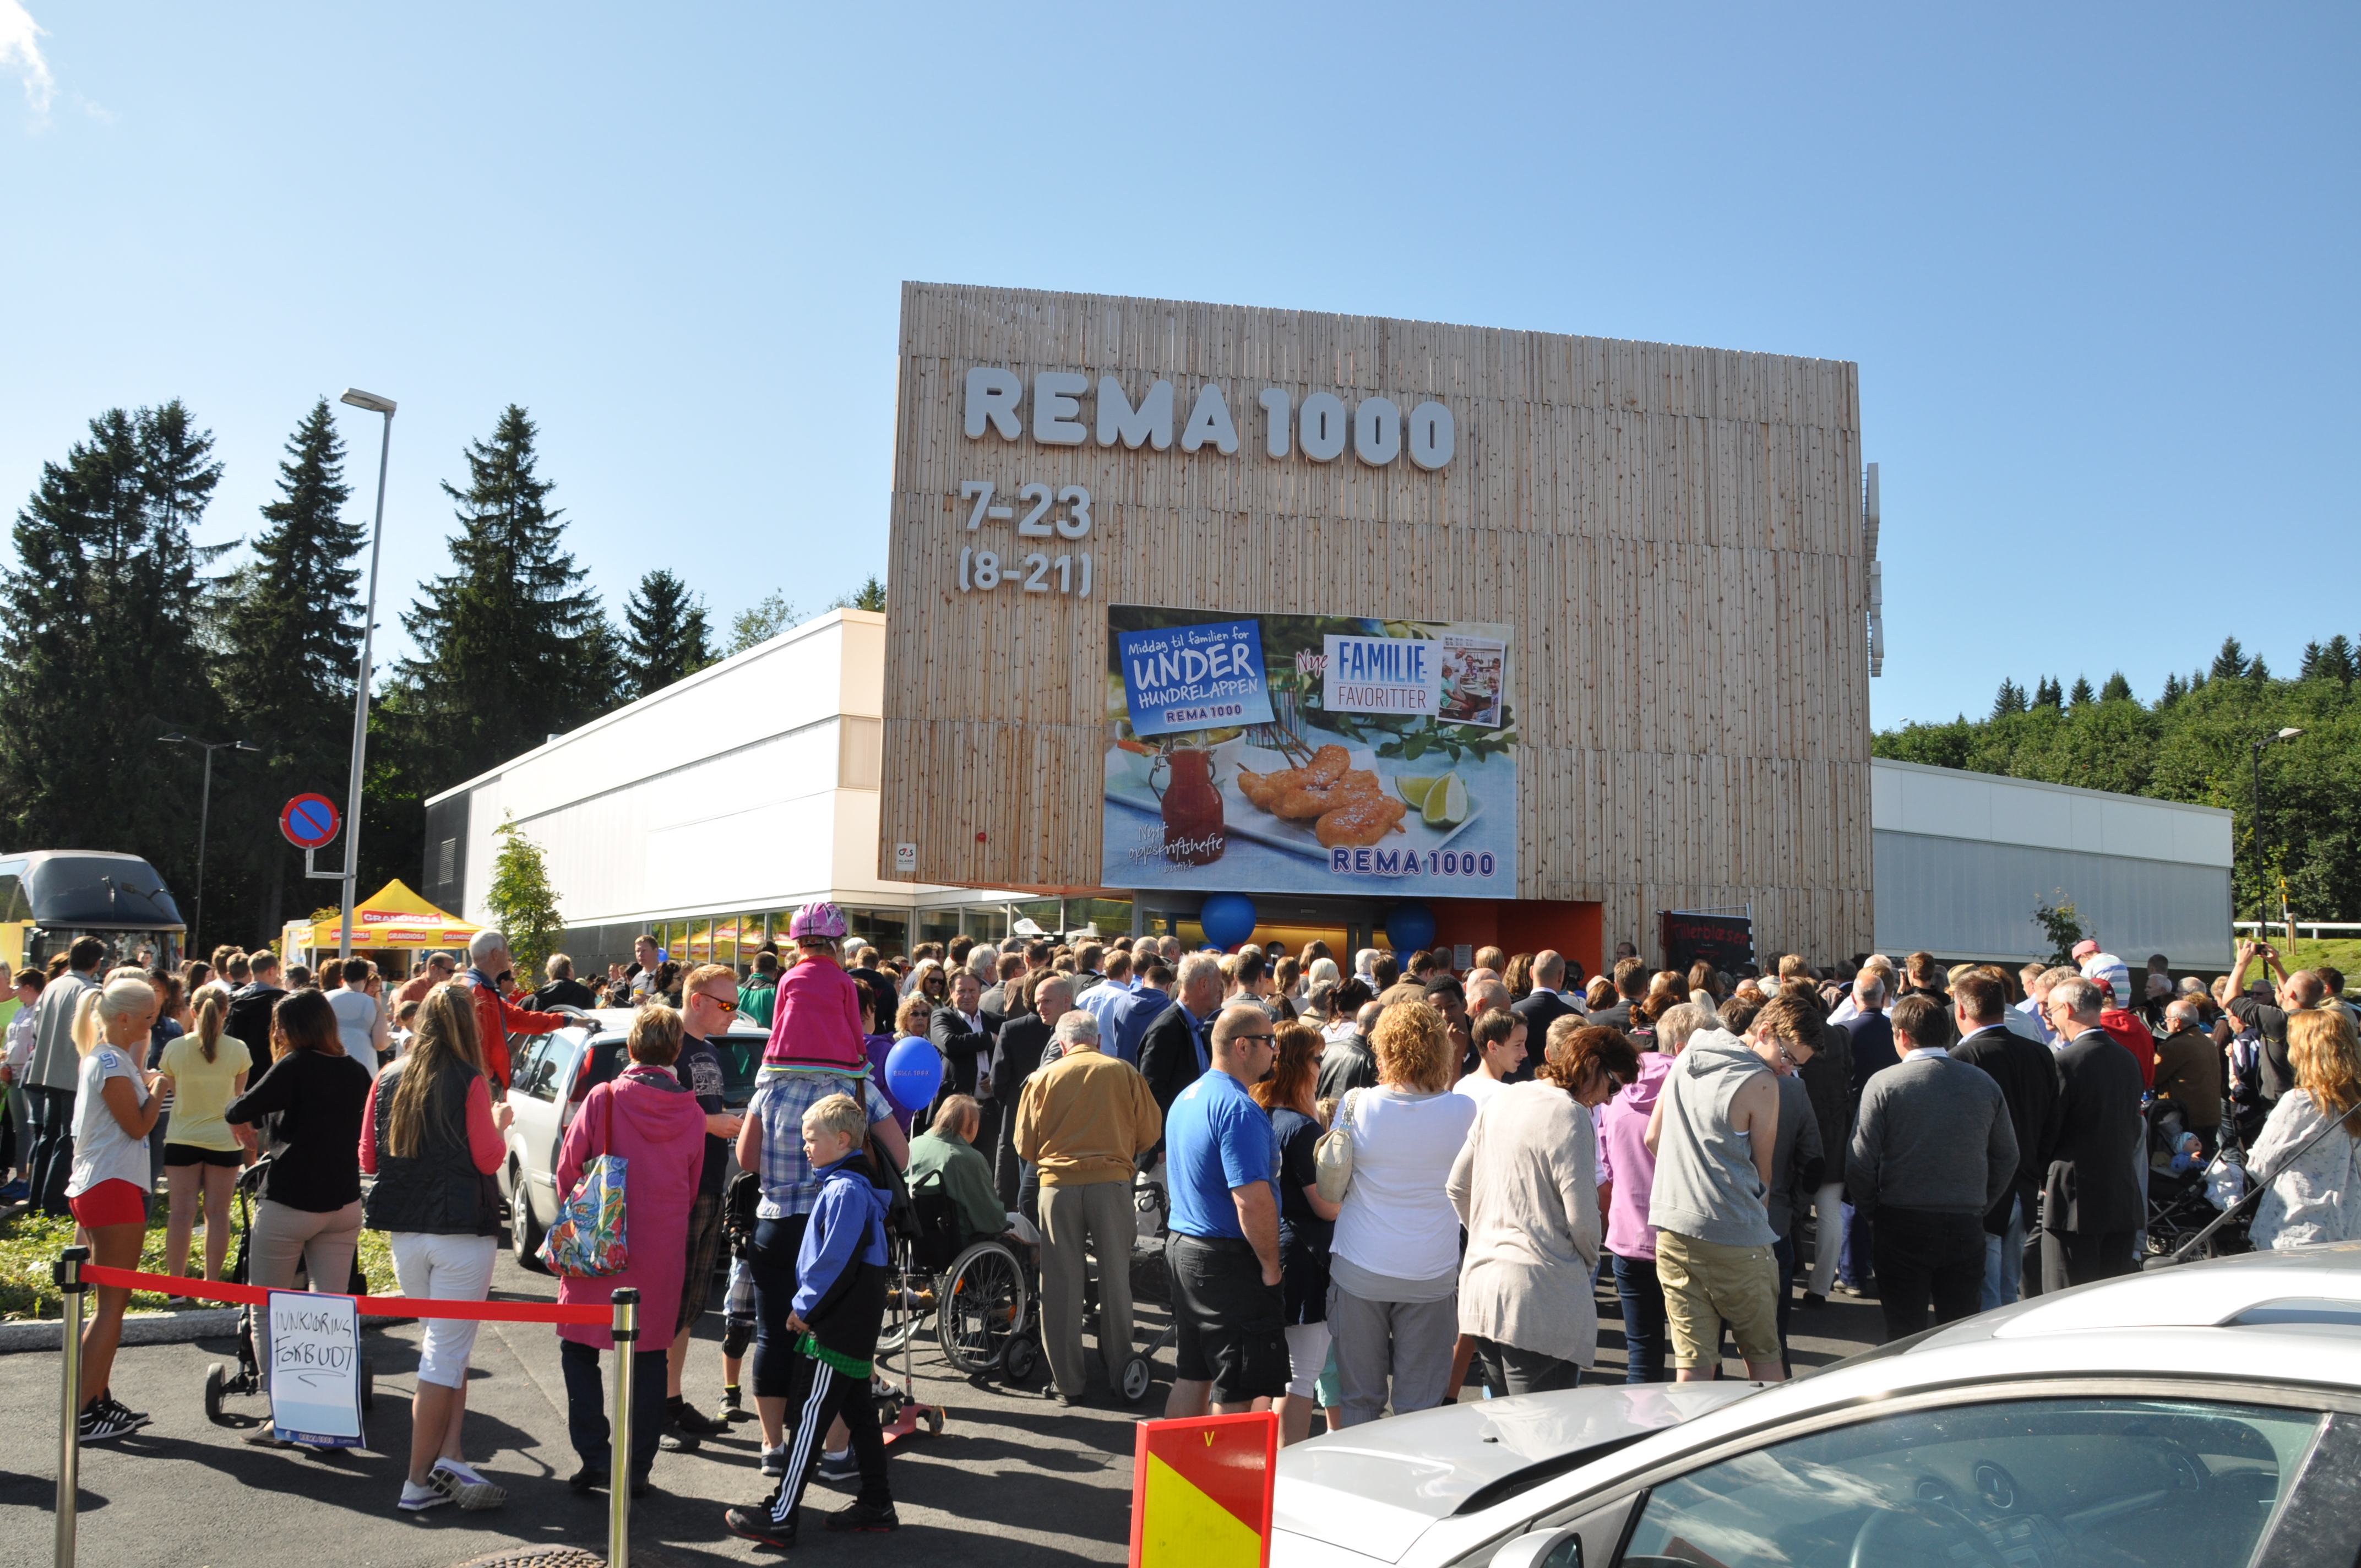 REMA1000 at Kroppanmarka in Trondheim is one of the eco-friendly supermarkets there is